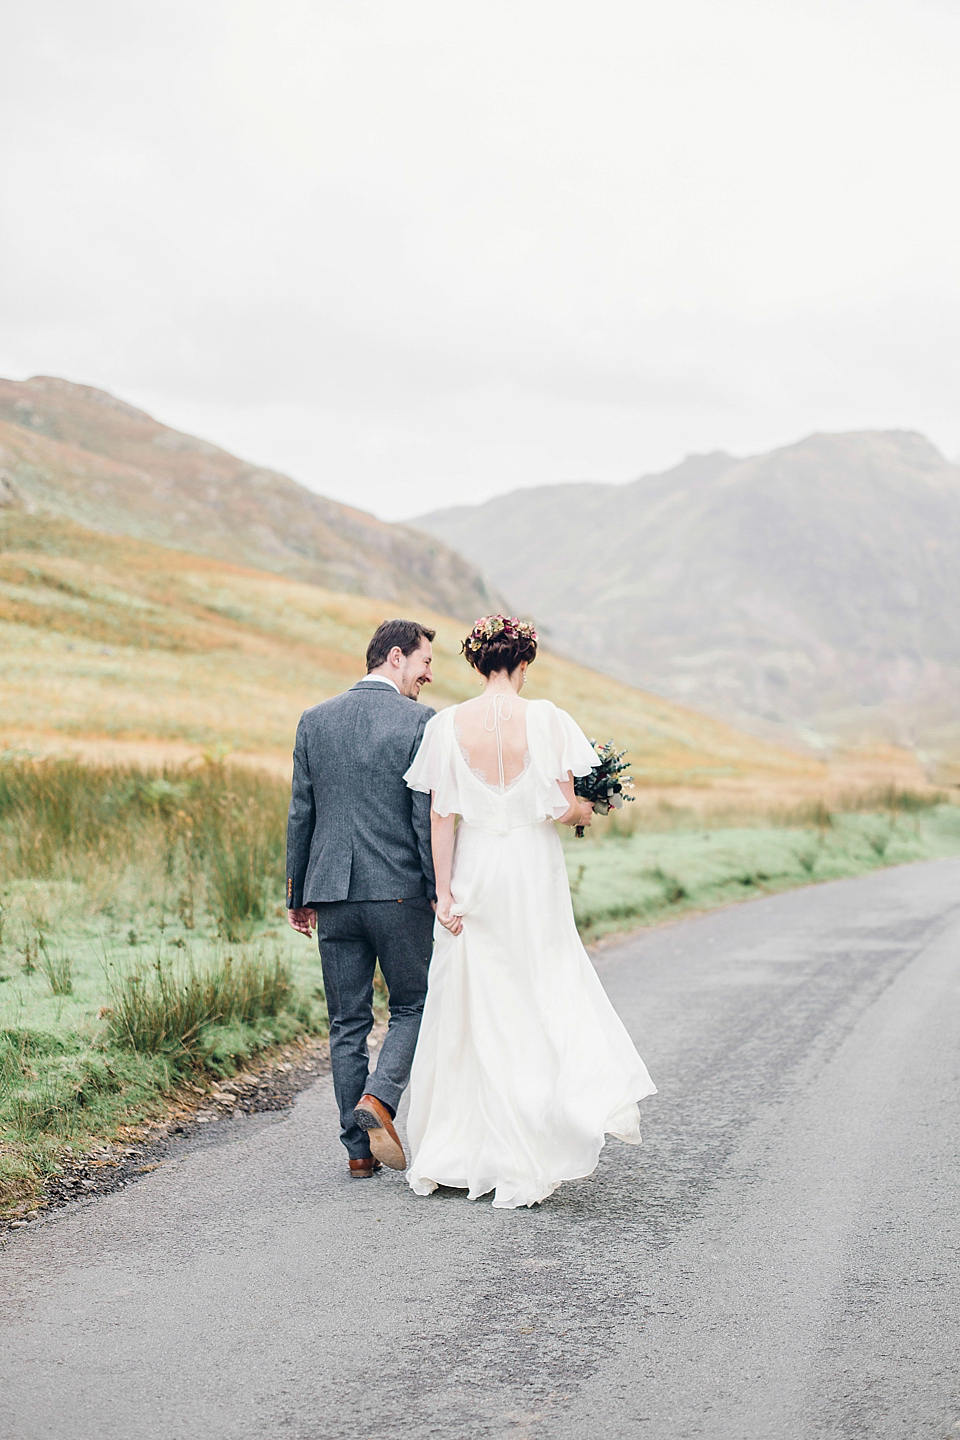 A Jenny Packham Dress For A Homemade Autumn Wedding In The Lake District (Weddings )